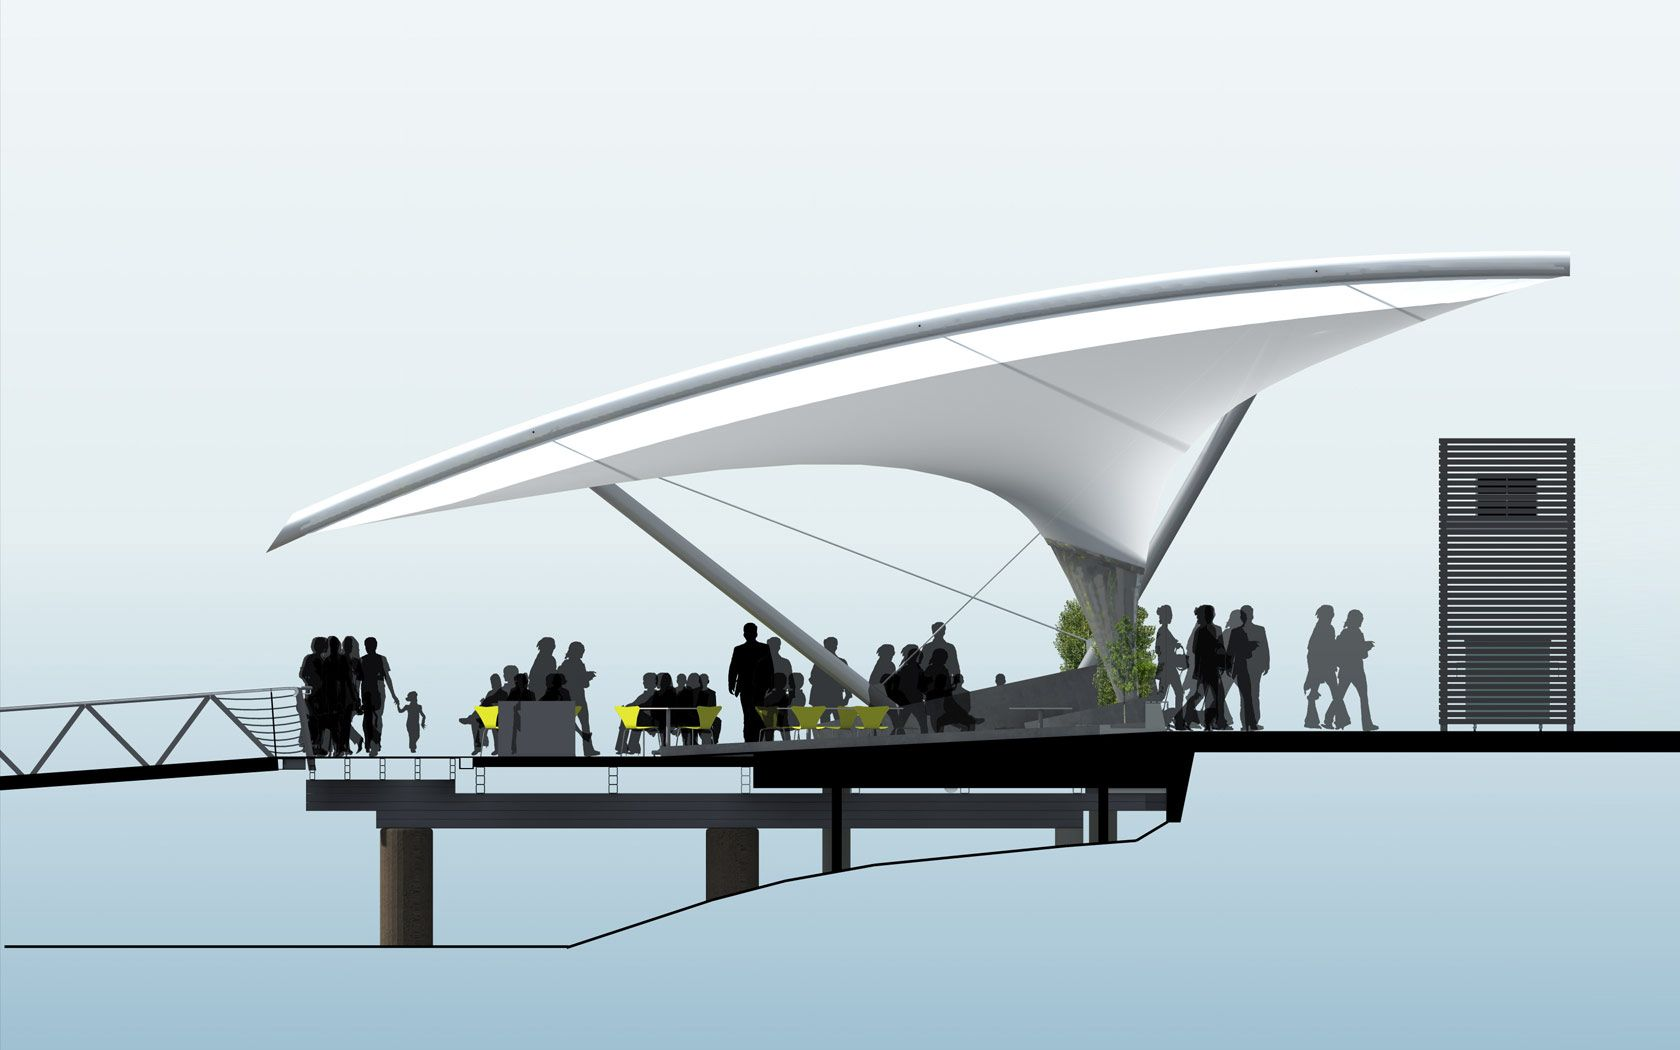 Sydney Fish markets design drawing of the seating and deck area